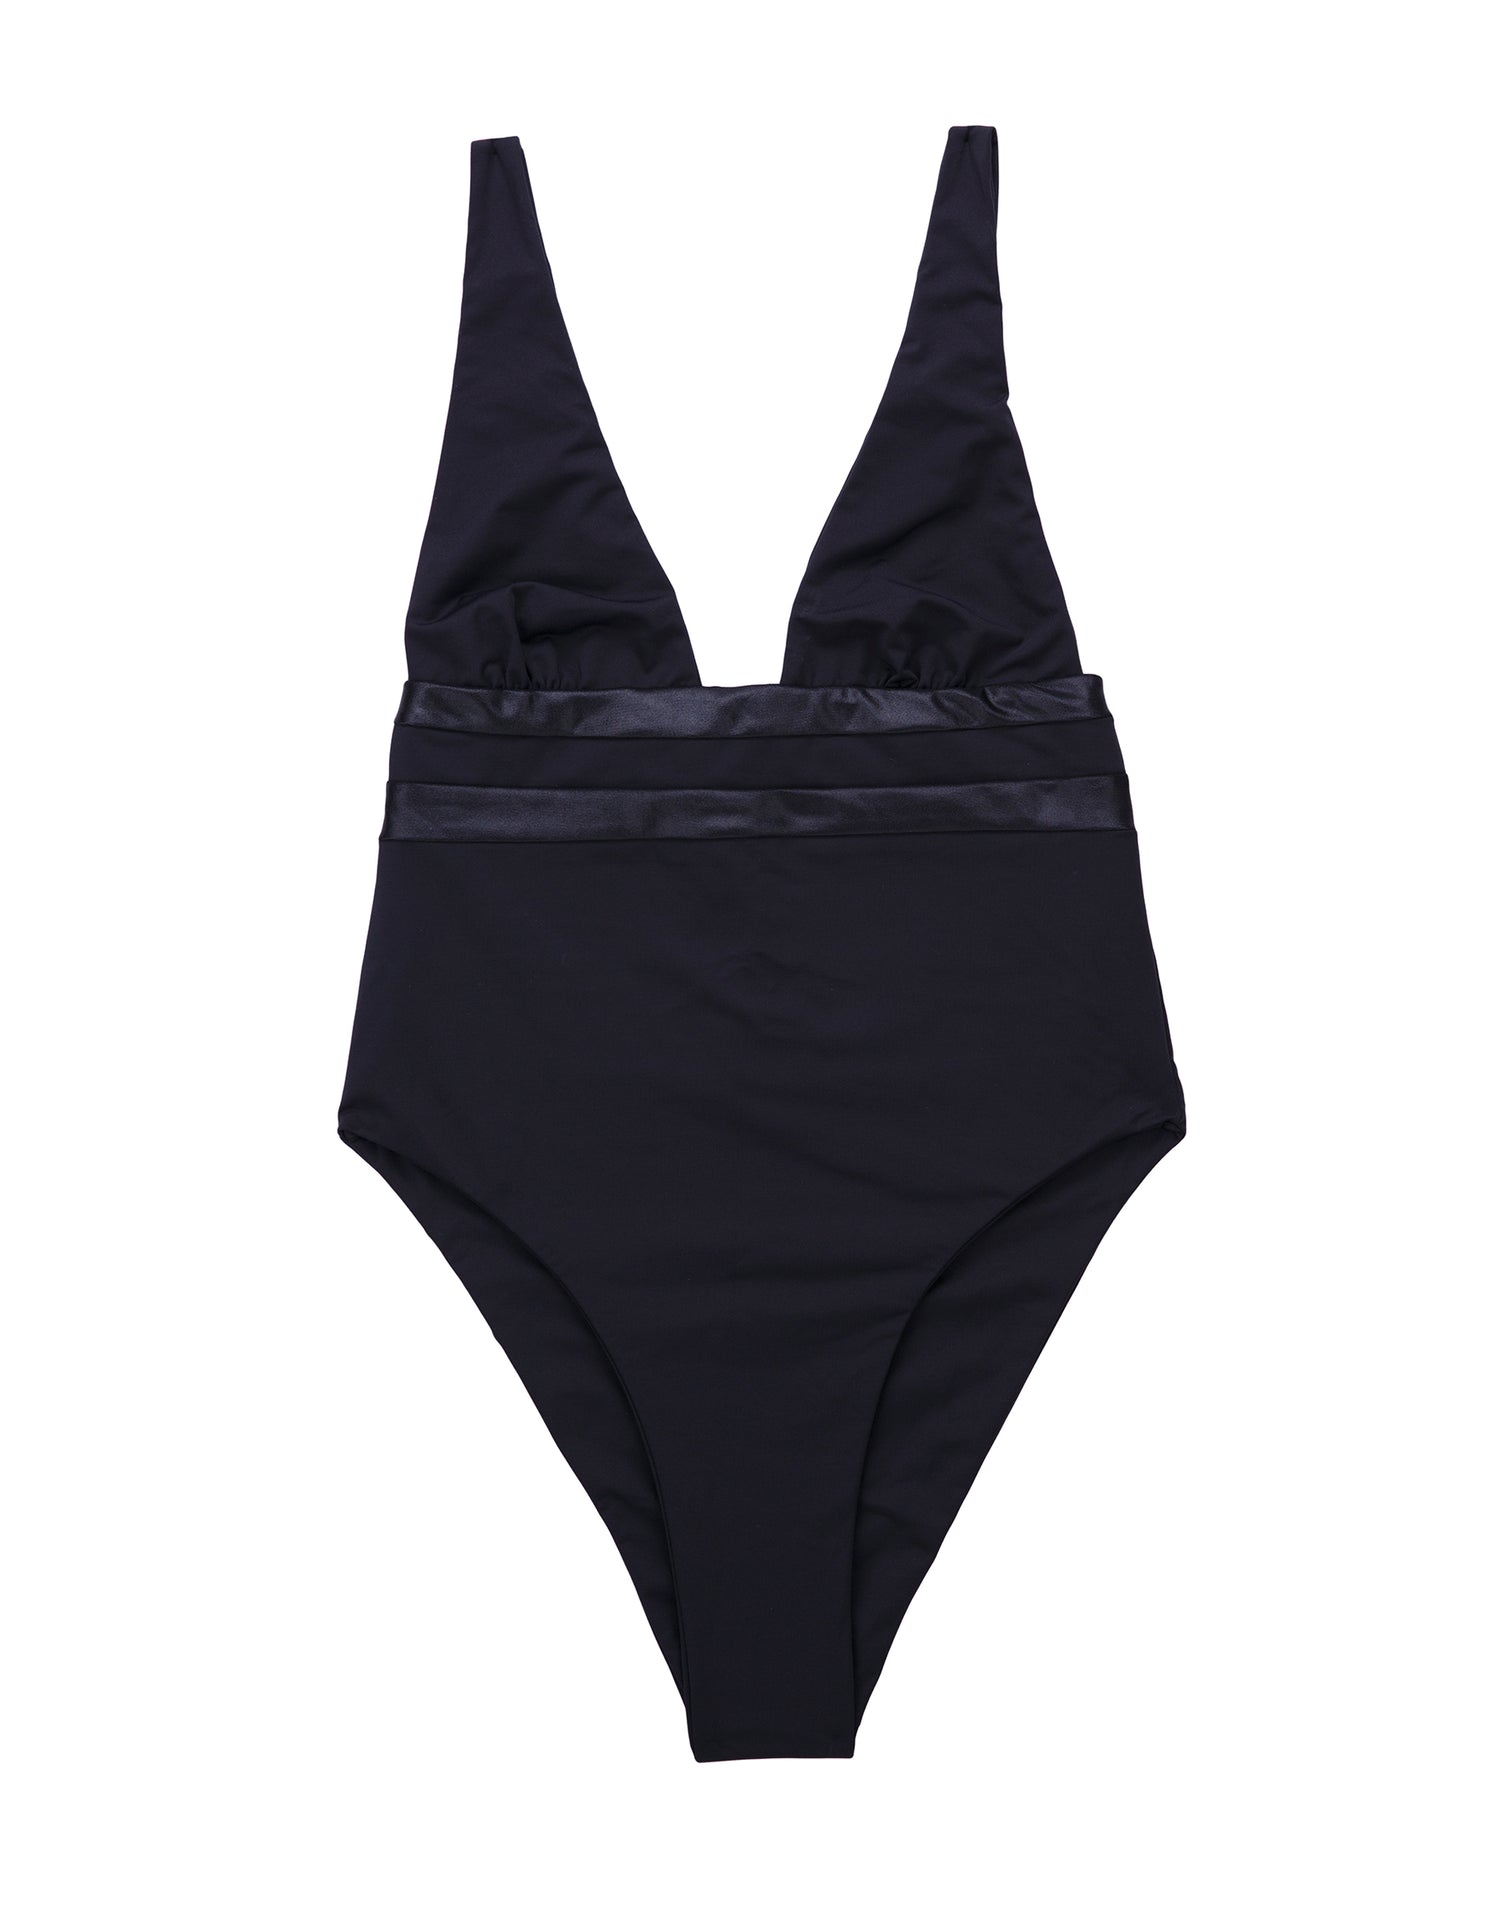 Mia Skimpy One Piece in Black - product view